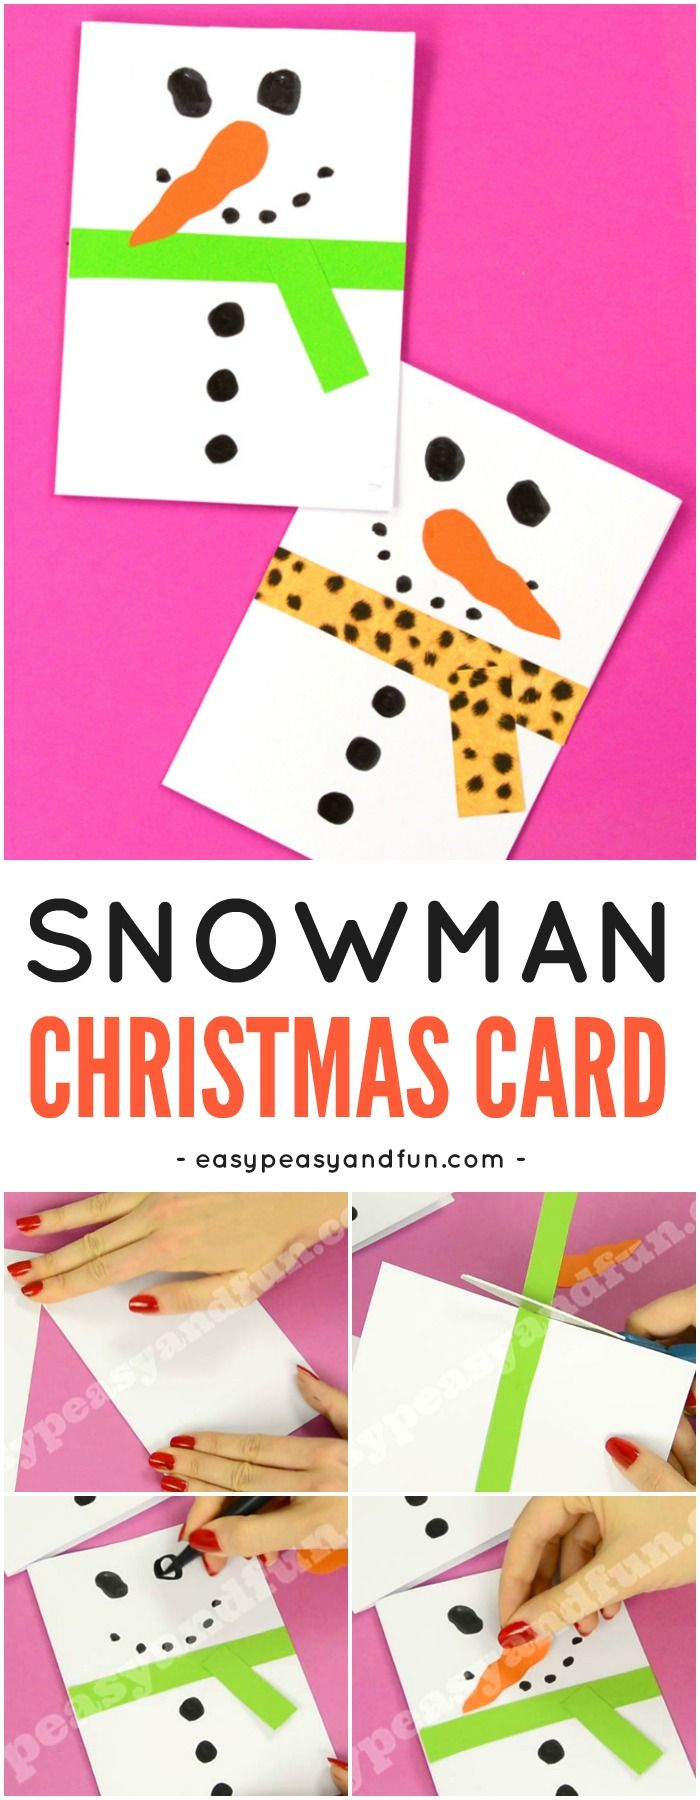 DIY Snowman Christmas Card Idea for Kids to Make. Fun Christmas Paper Craft for Kids. #Christmascraftforkids #DIYChristmascardideas #papercraftsforkids